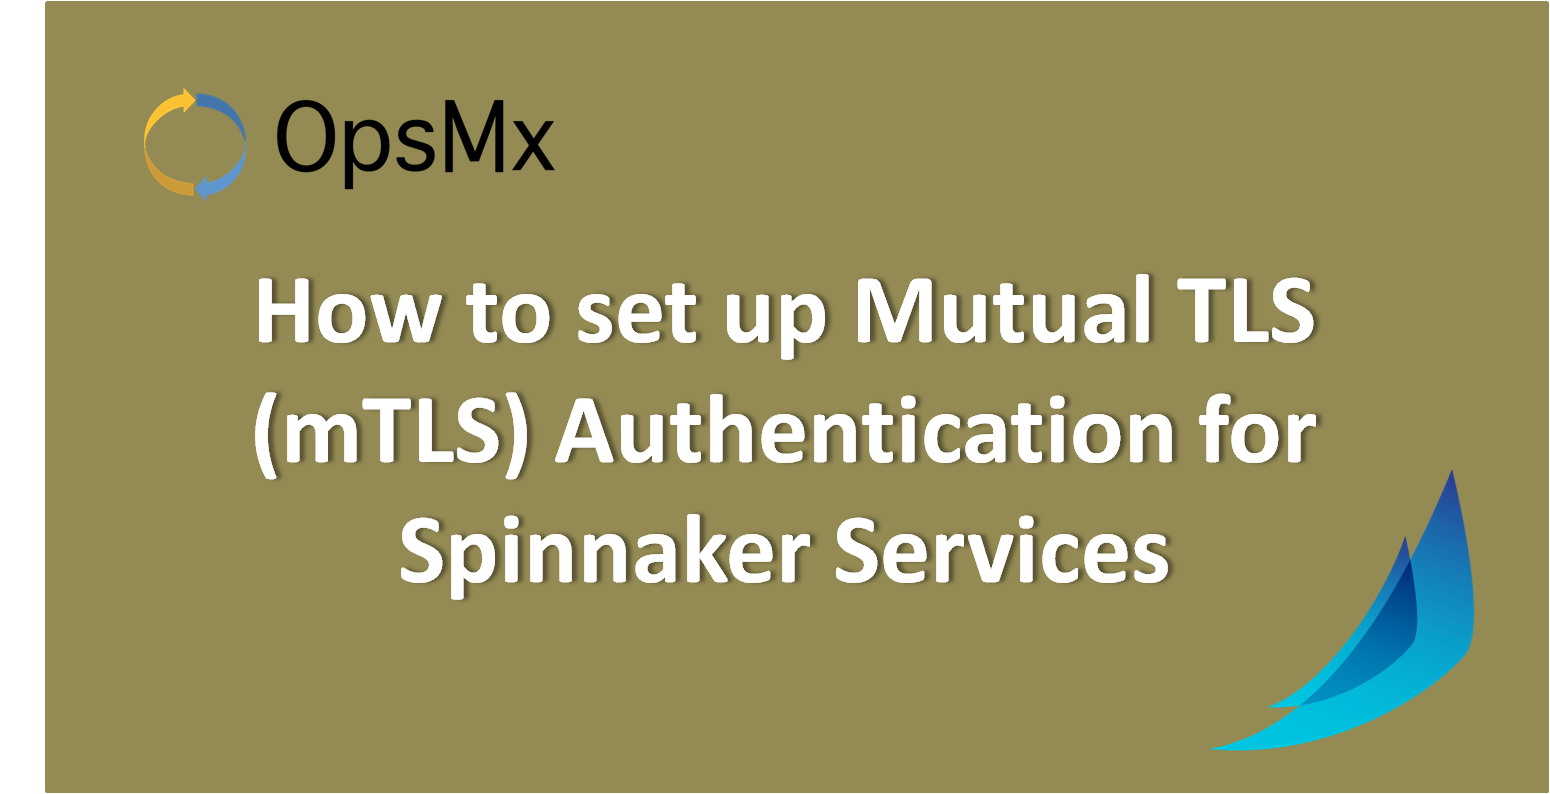 How to set up Mutual TLS (mTLS) Authentication for Spinnaker Services